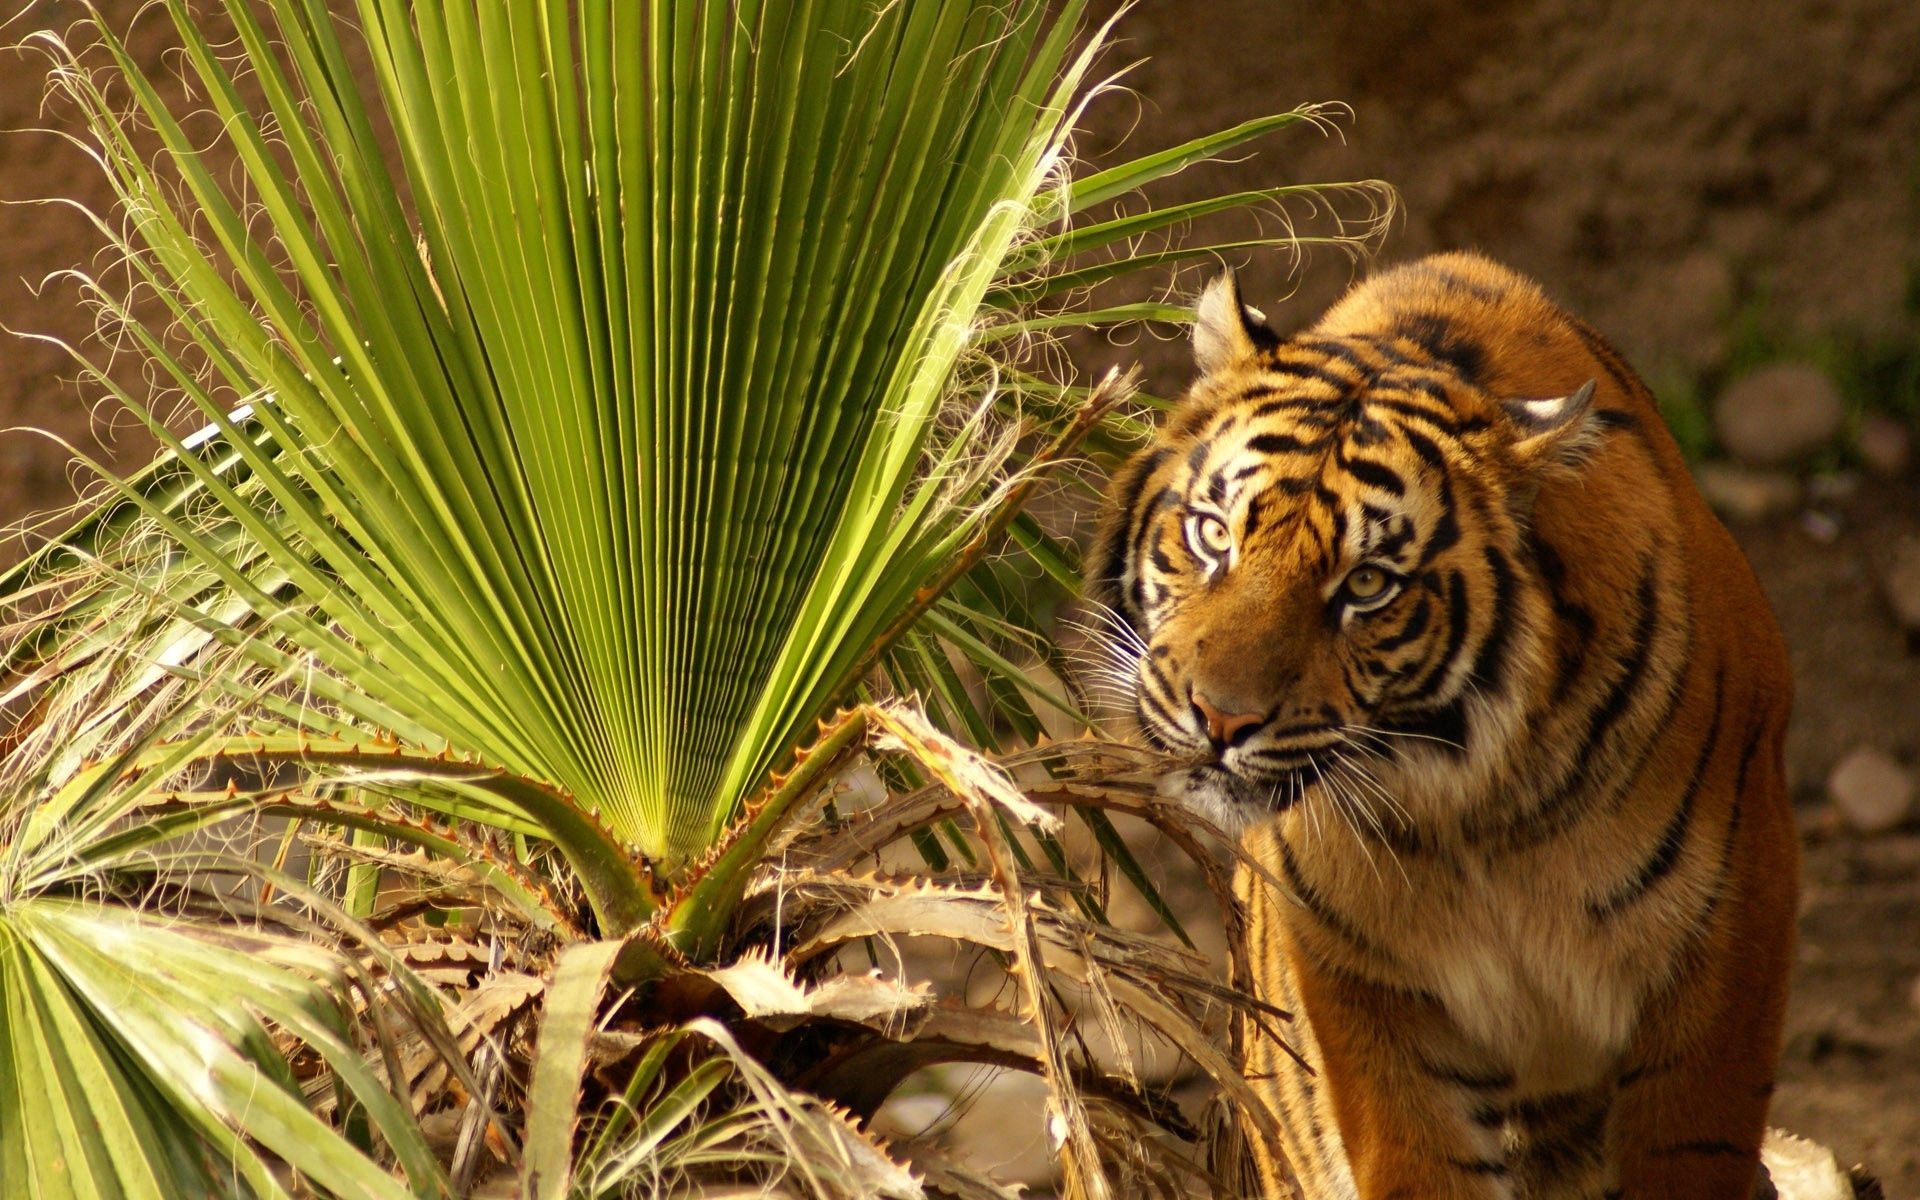 112271 download wallpaper Animals, Tiger, Muzzle, Big Cat, Grass, Hunting, Hunt screensavers and pictures for free